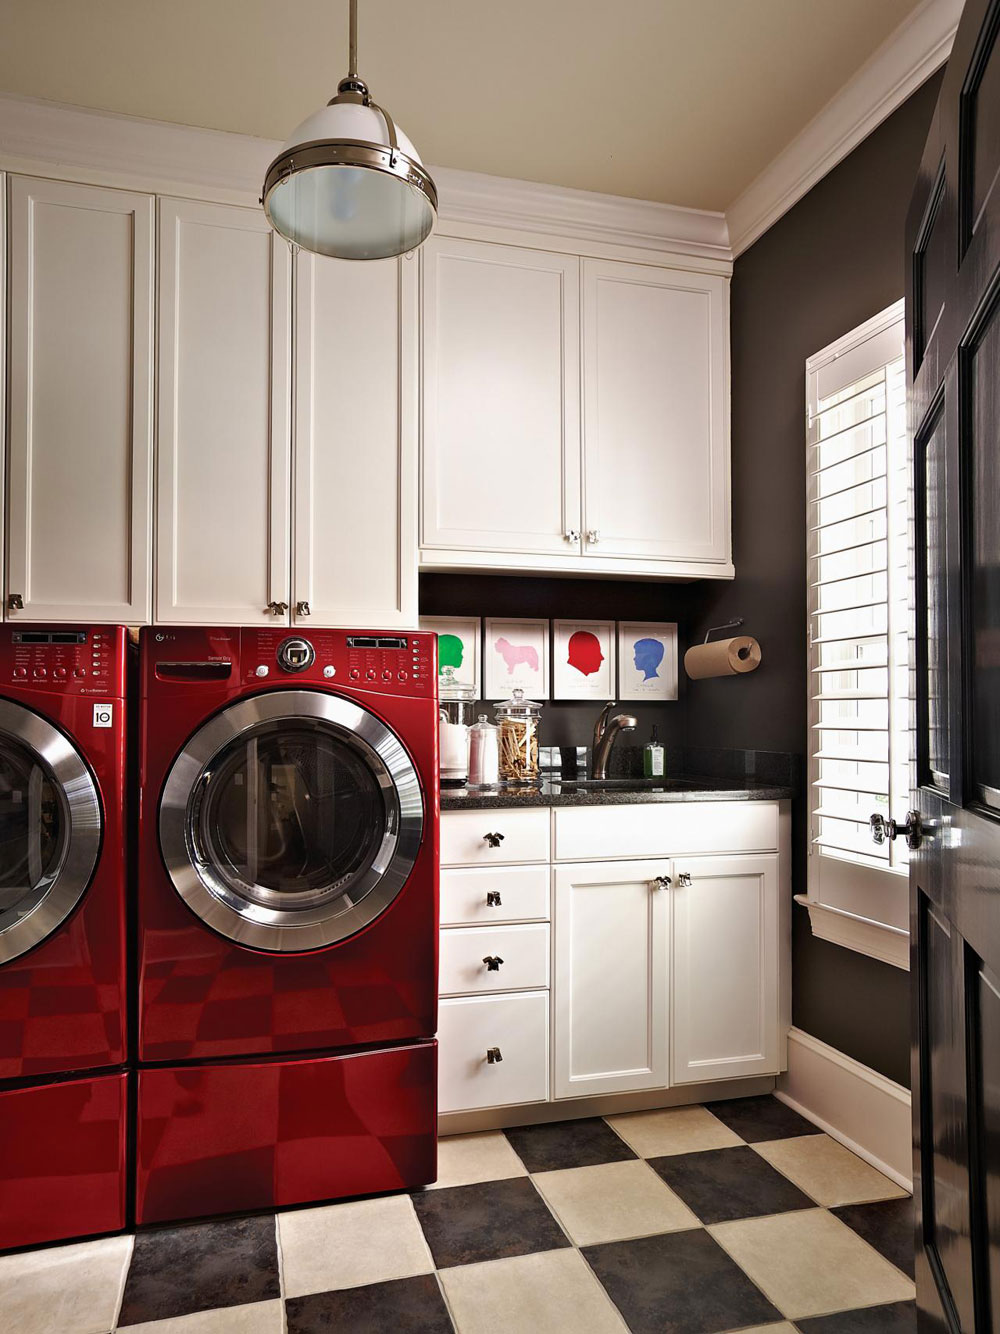 Laundry-room-ideas-for-a-clean-house-4 laundry-room-ideas for a clean house